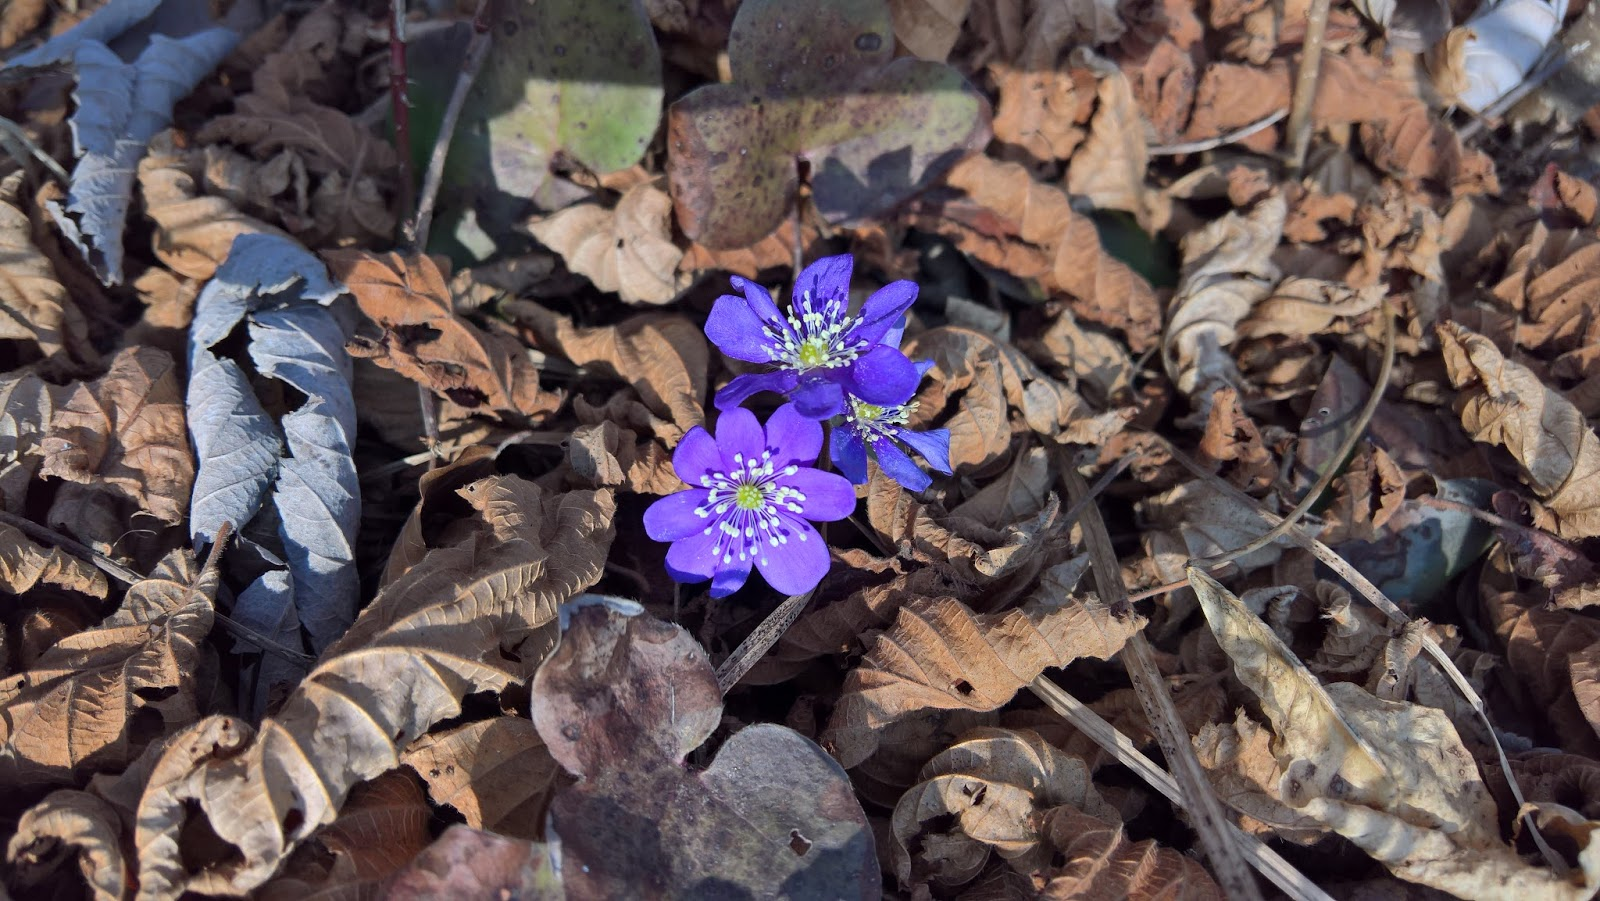 Hepatica nobilis [Ranunculaceae] – notable leaves and notable purple flowers